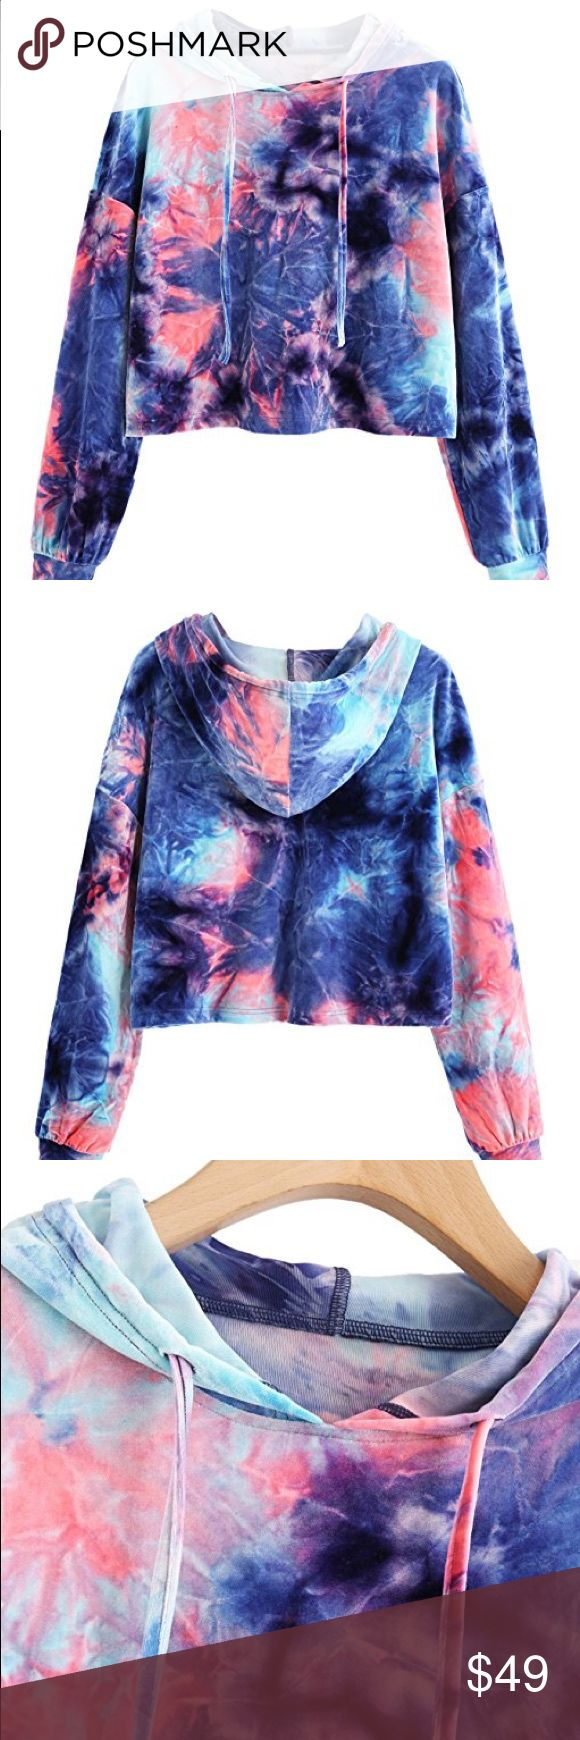 ♥sale♥ Velvet tie dye sweatshirt Brand new w tags boutique velvet pastels tie dye ripped sweatshirt in sizes small or large.   POSH RULES ONLY NO PP NO TRADES NO LOWBALL OFFERS   HAPPY POSHING! boutique Tops Sweatshirts & Hoodies